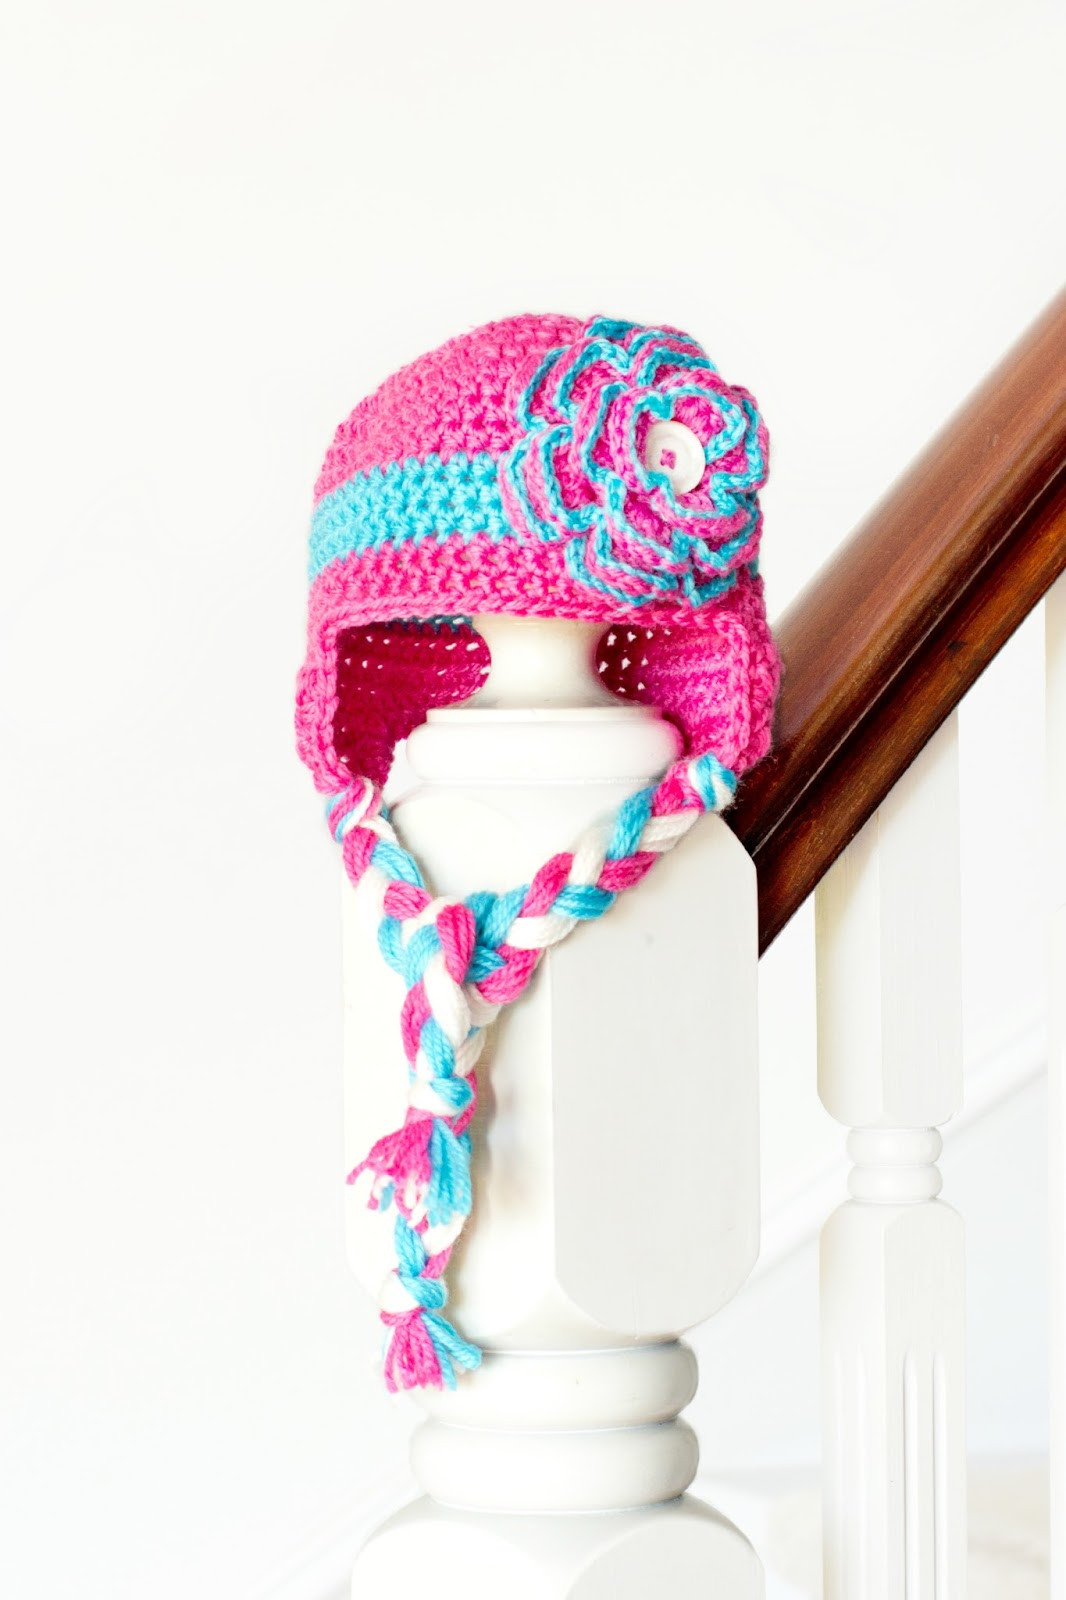 Crochet Child Hat Awesome 41 Adorable Crochet Baby Hats & Patterns to Make Of Perfect 44 Pictures Crochet Child Hat